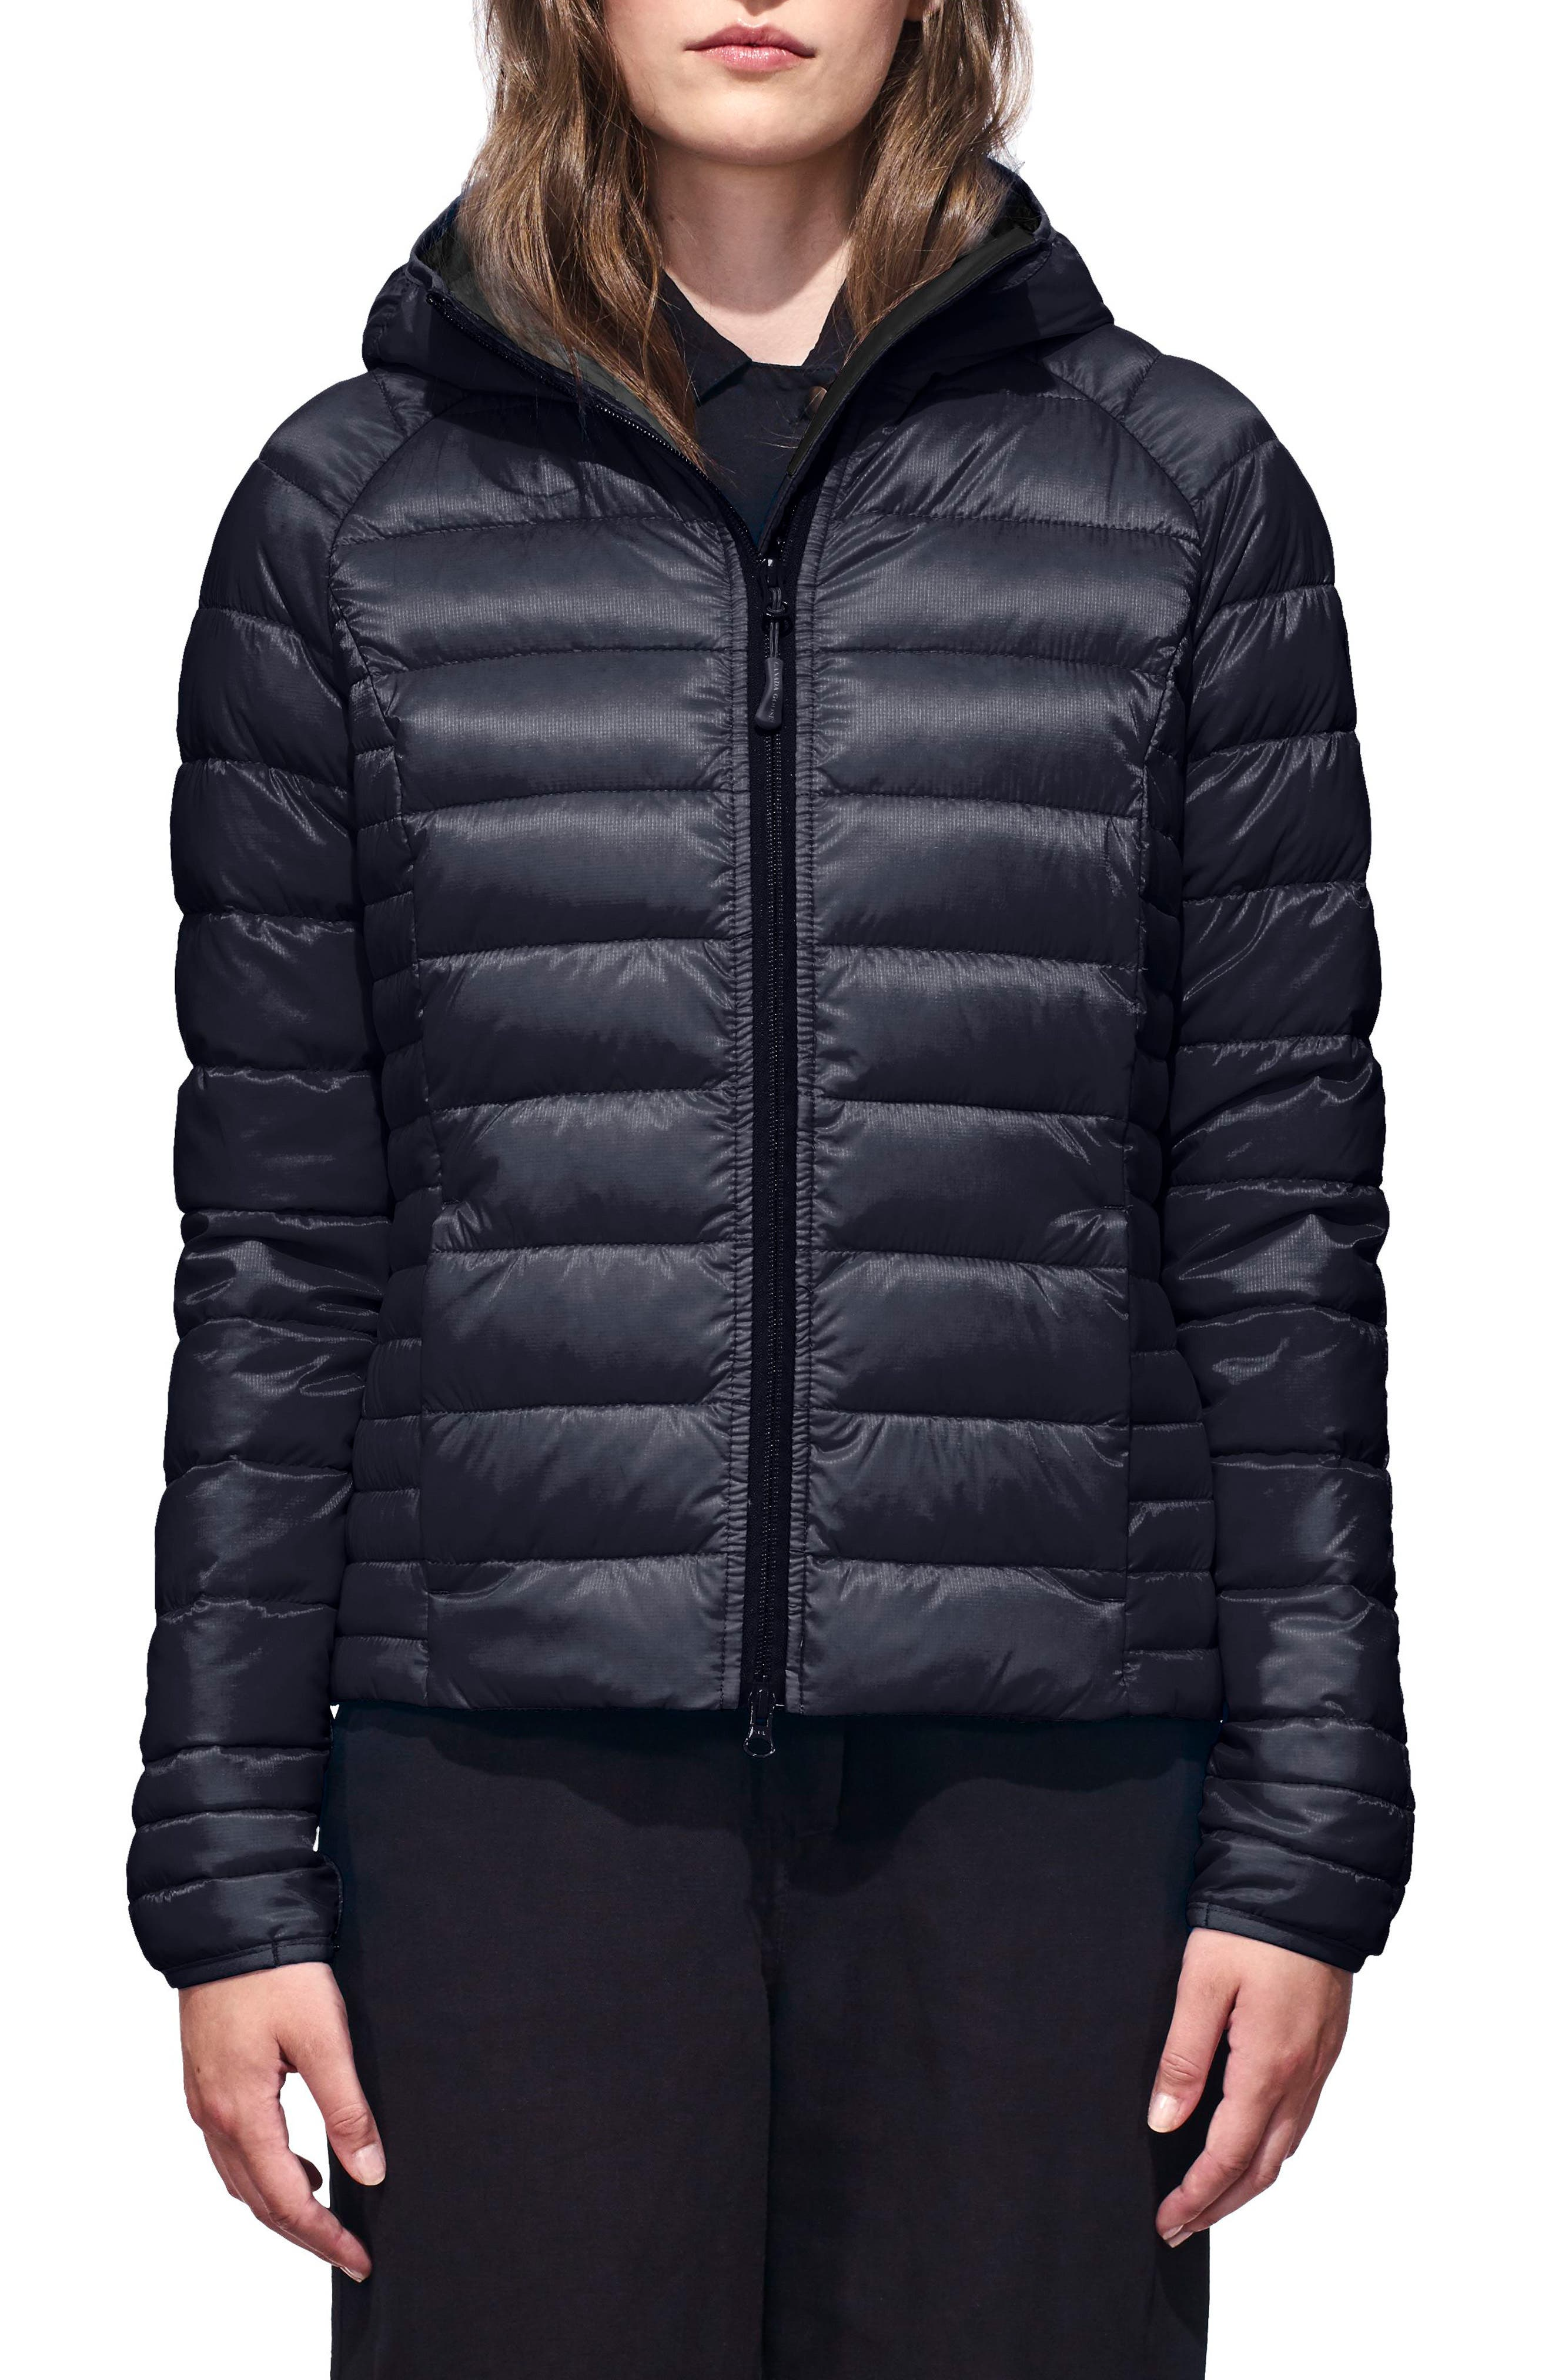 CANADA GOOSE 'Brookvale' Packable Hooded Quilted Down Jacket, Main, color, ADMIRAL BLUE/ BLACK